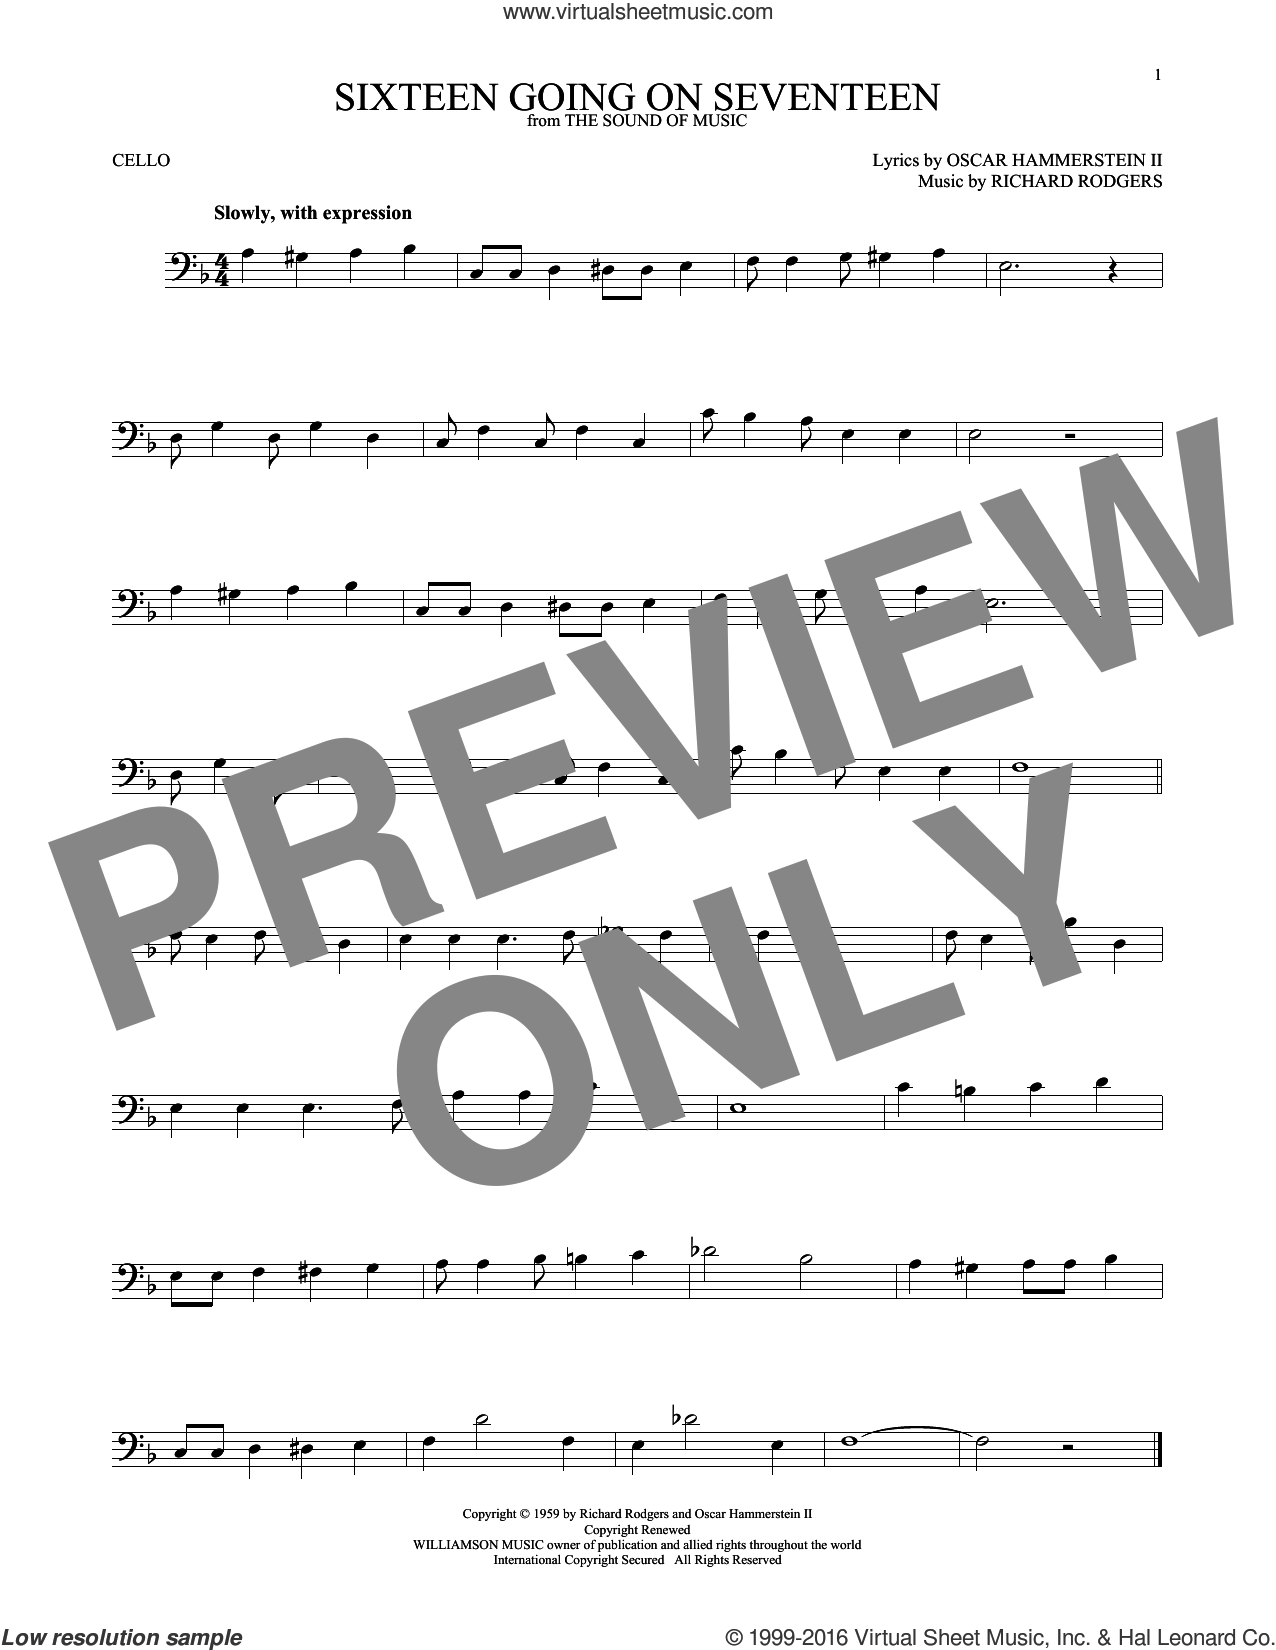 Sixteen Going On Seventeen sheet music for cello solo by Rodgers & Hammerstein, Oscar II Hammerstein and Richard Rodgers, intermediate skill level